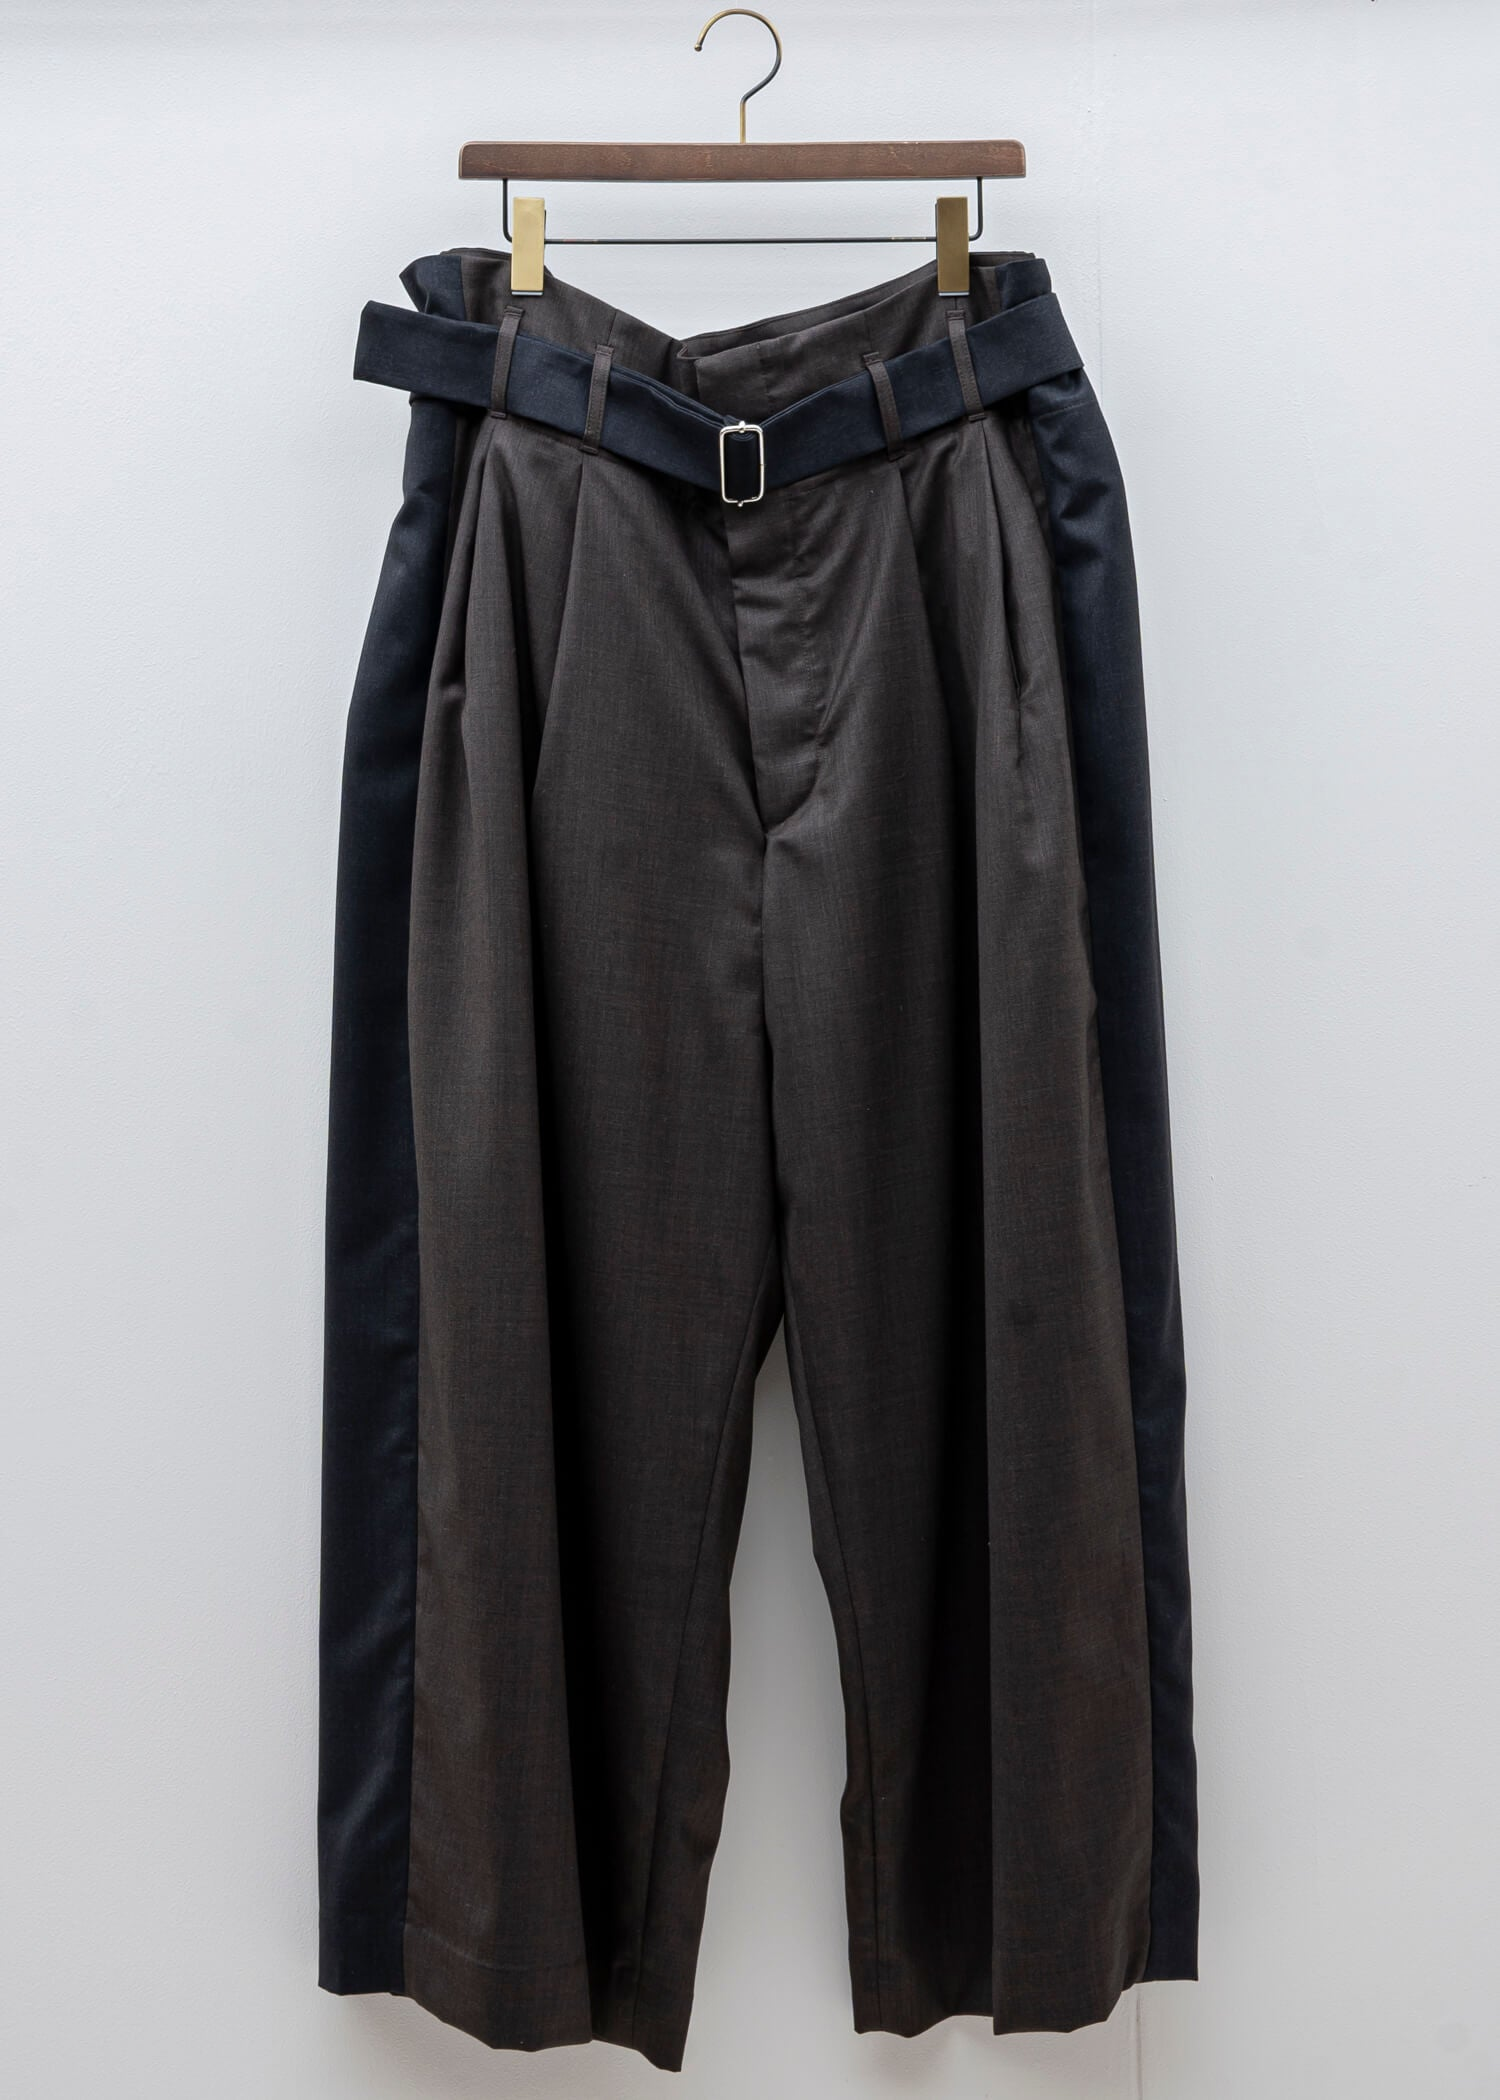 HED MAYNER / WIDE PLEATED PANT / GREY & BROWN COOL WOOL